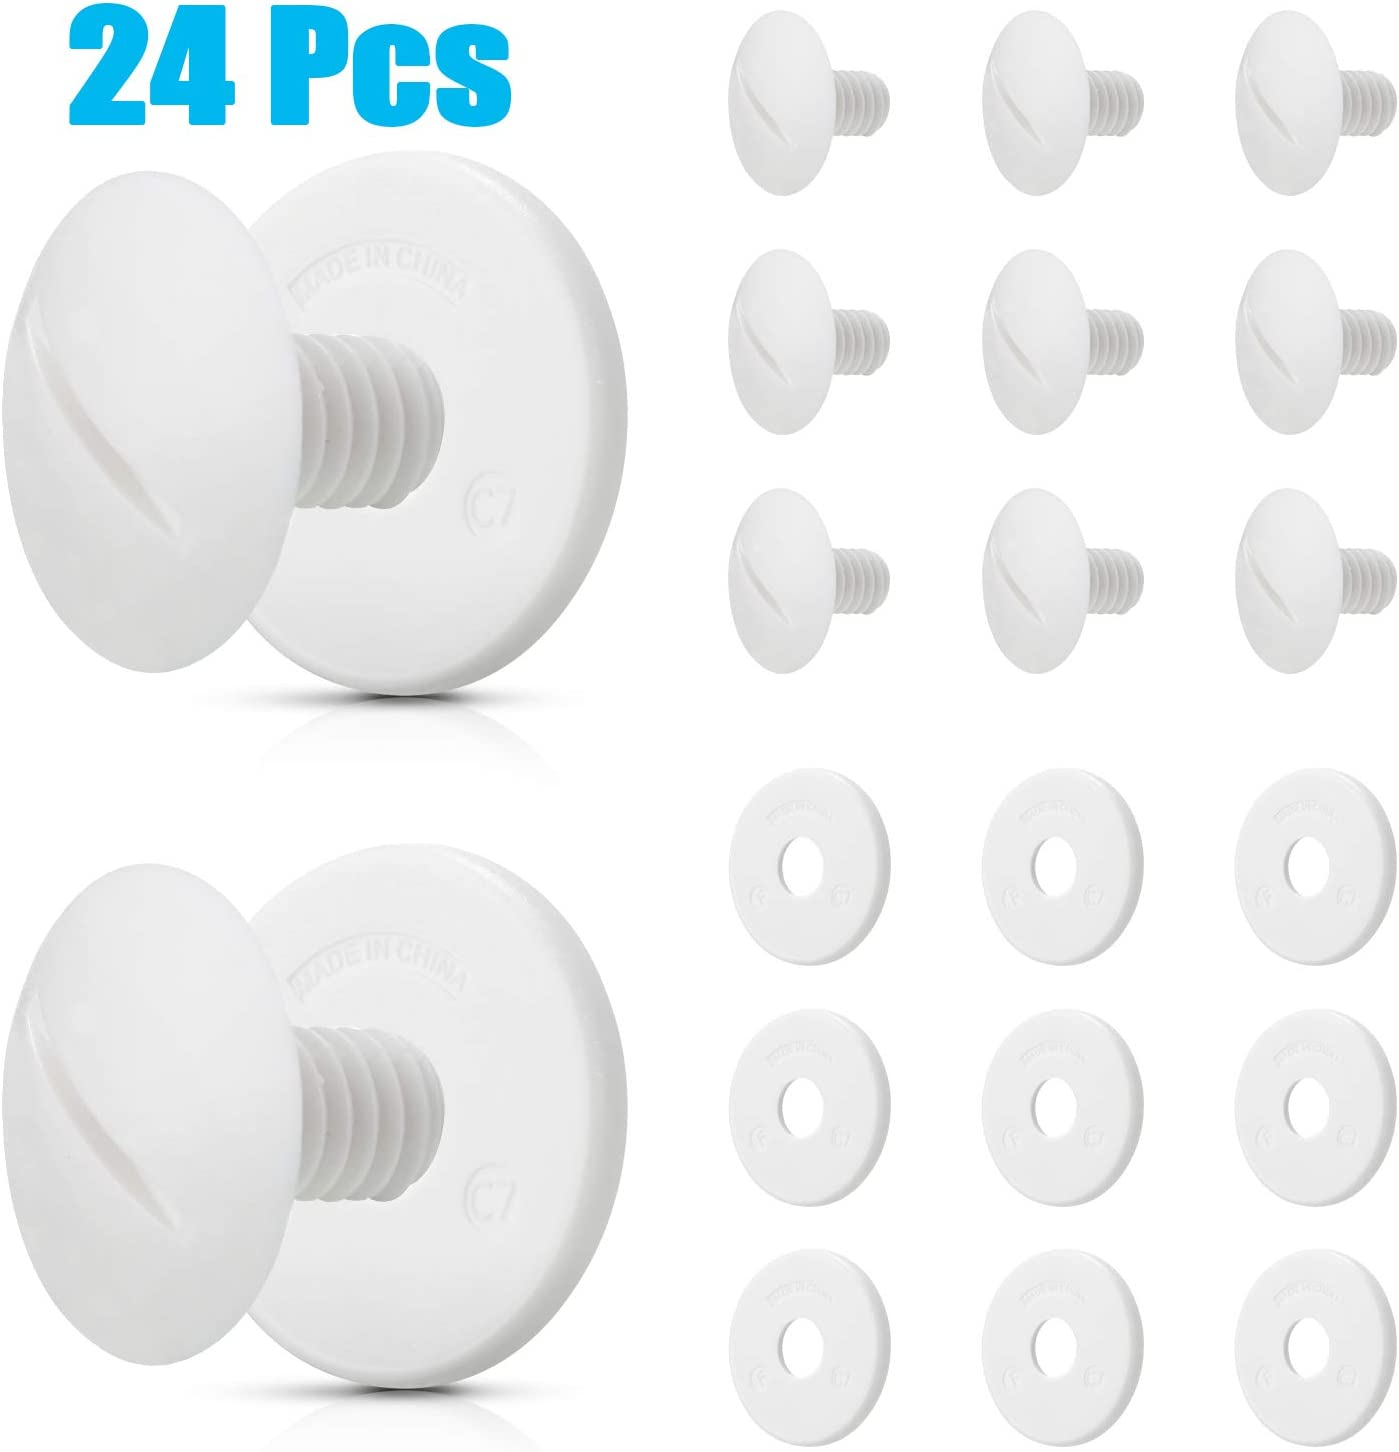 C-55 C55 Wheel Screws White Plastic Wheel Screws Compatible with Polaris Pool Cleaner 180/280 with Extra Washers Pool Cleaner Replacement Parts (24)